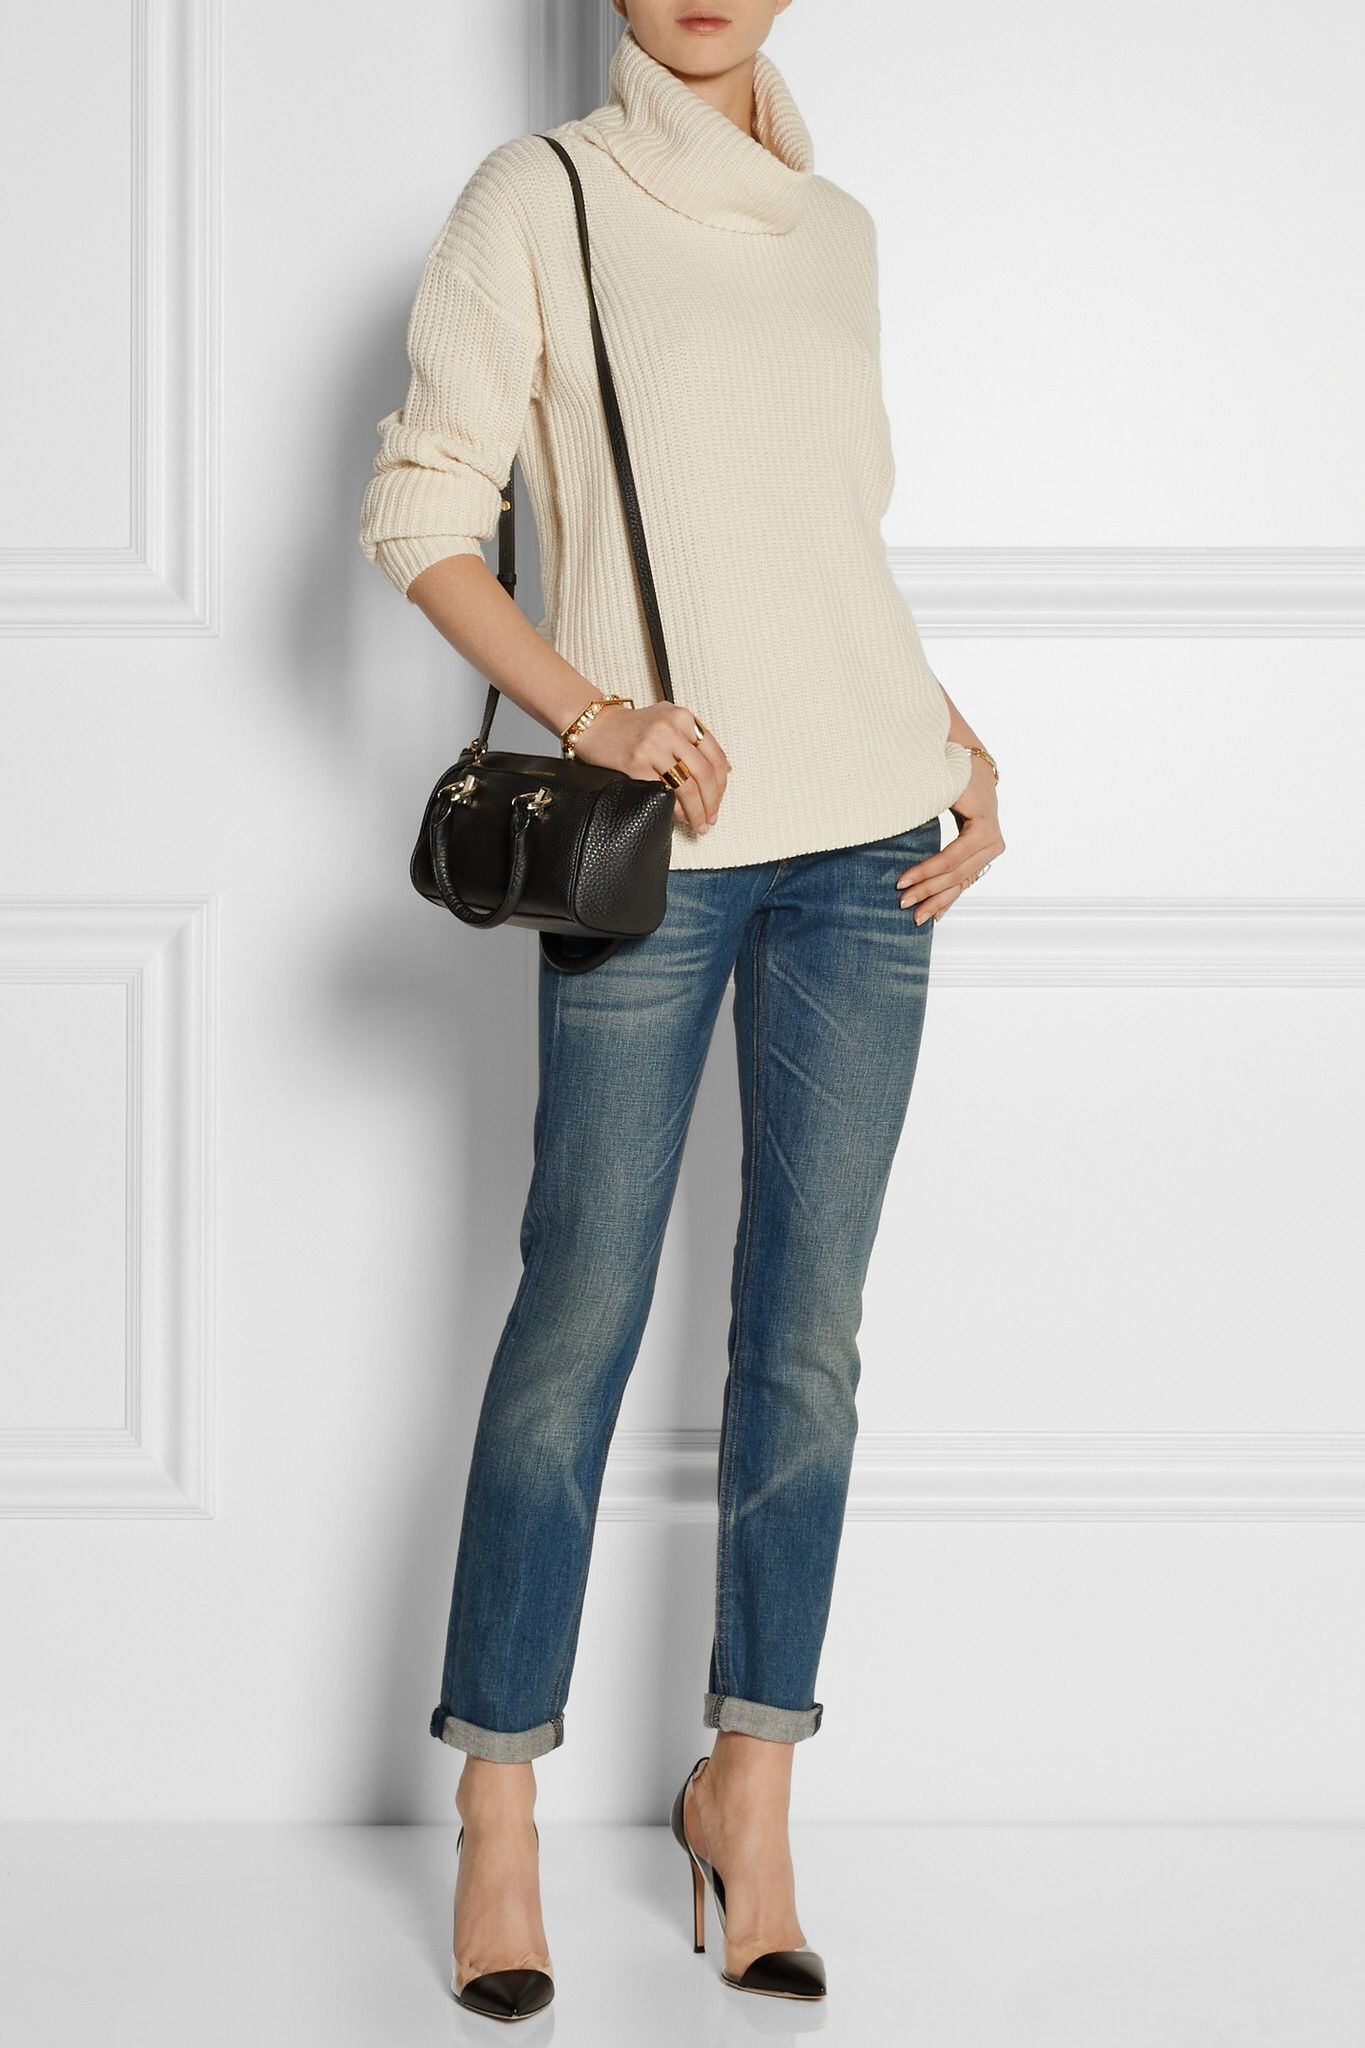 DIANE VON FURSTENBERG Sutra Mini Duffel textured-leather shoulder bag £201.25 http://www.net-a-porter.com/products/488992